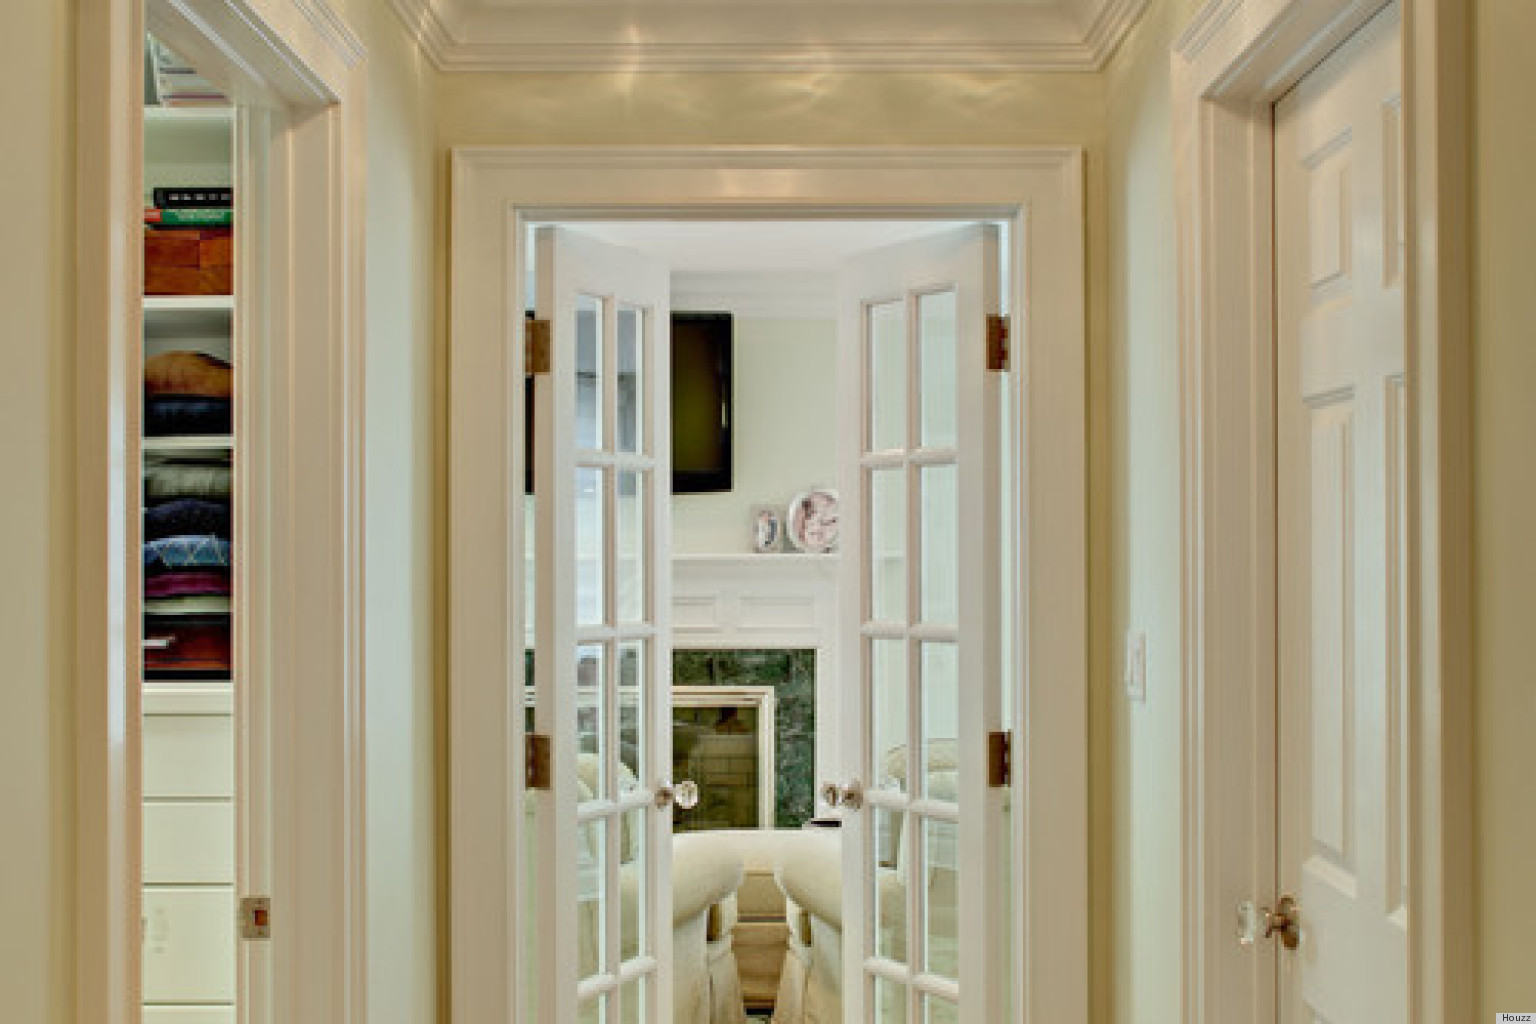 Interior french doors interior french doors - 10 Homes With French Doors That Are Just So Gorgeous Photos Huffpost